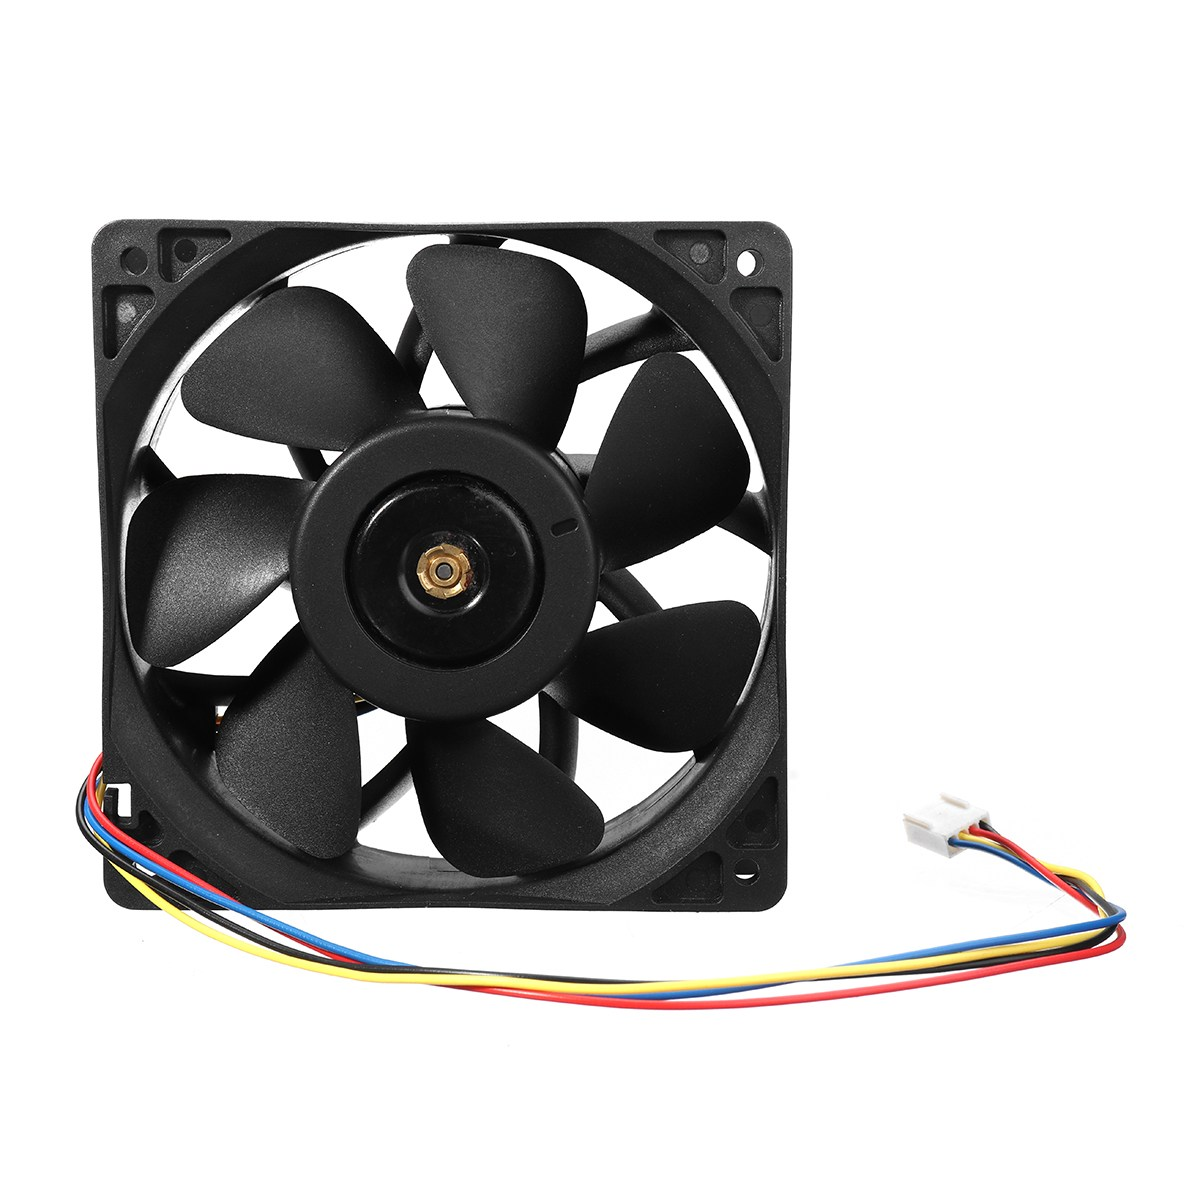 Cooling Fan 12V 2.7A 6000RPM Replacement 4-Wire Connector For Antminer S7 S9 a3c40094788 delta afc0712de 7k1m 38010022 double ball 4 wire pwm12v cooling fan for fujitsu for siemens for primergy rx300 s5 s6